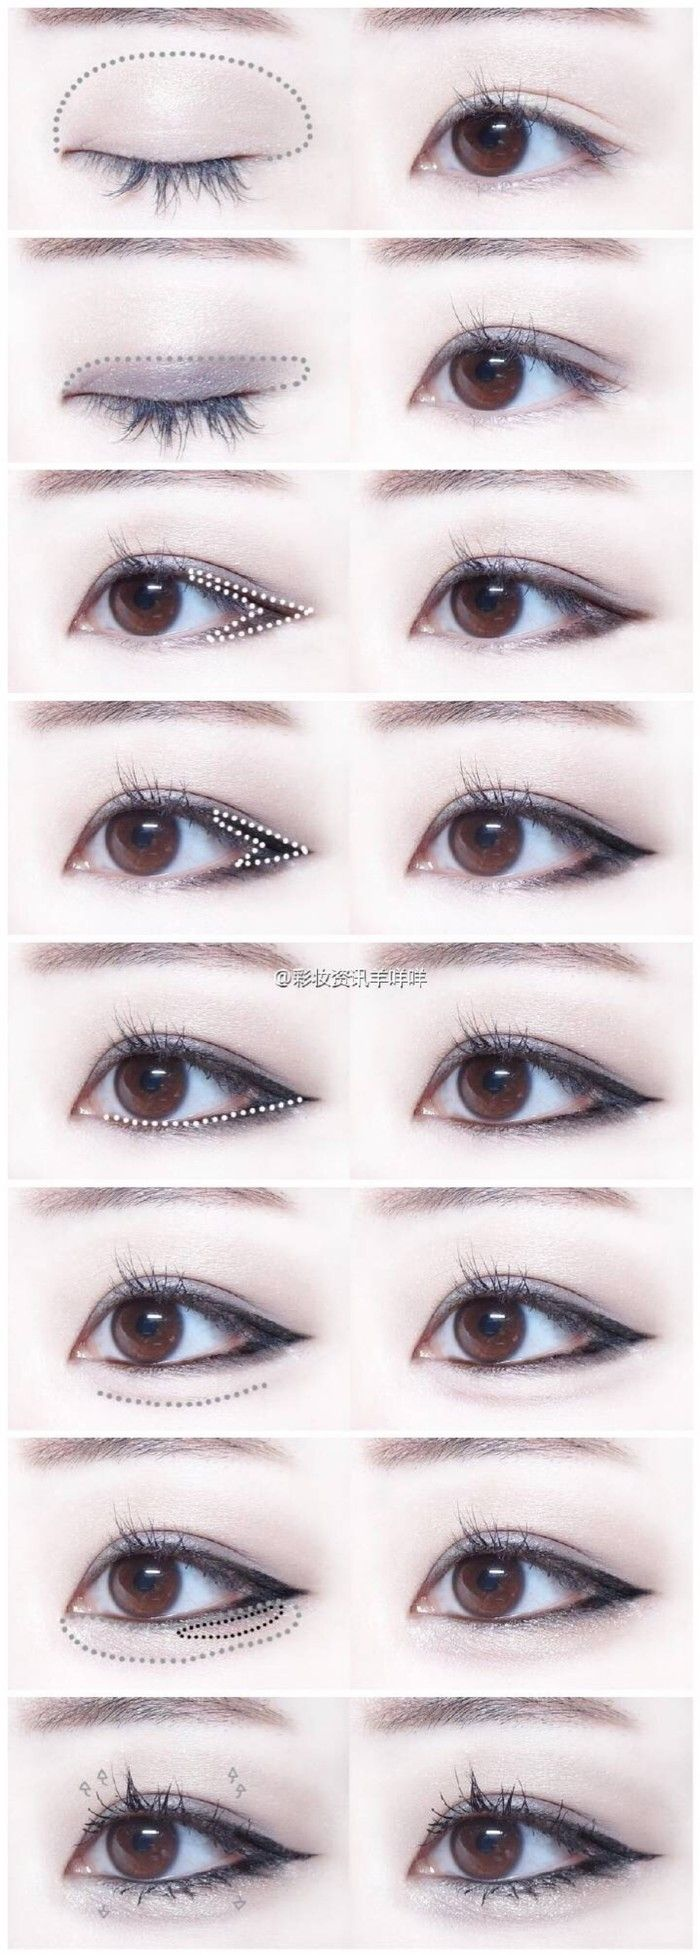 how to make your eyes bigger with eyeliner